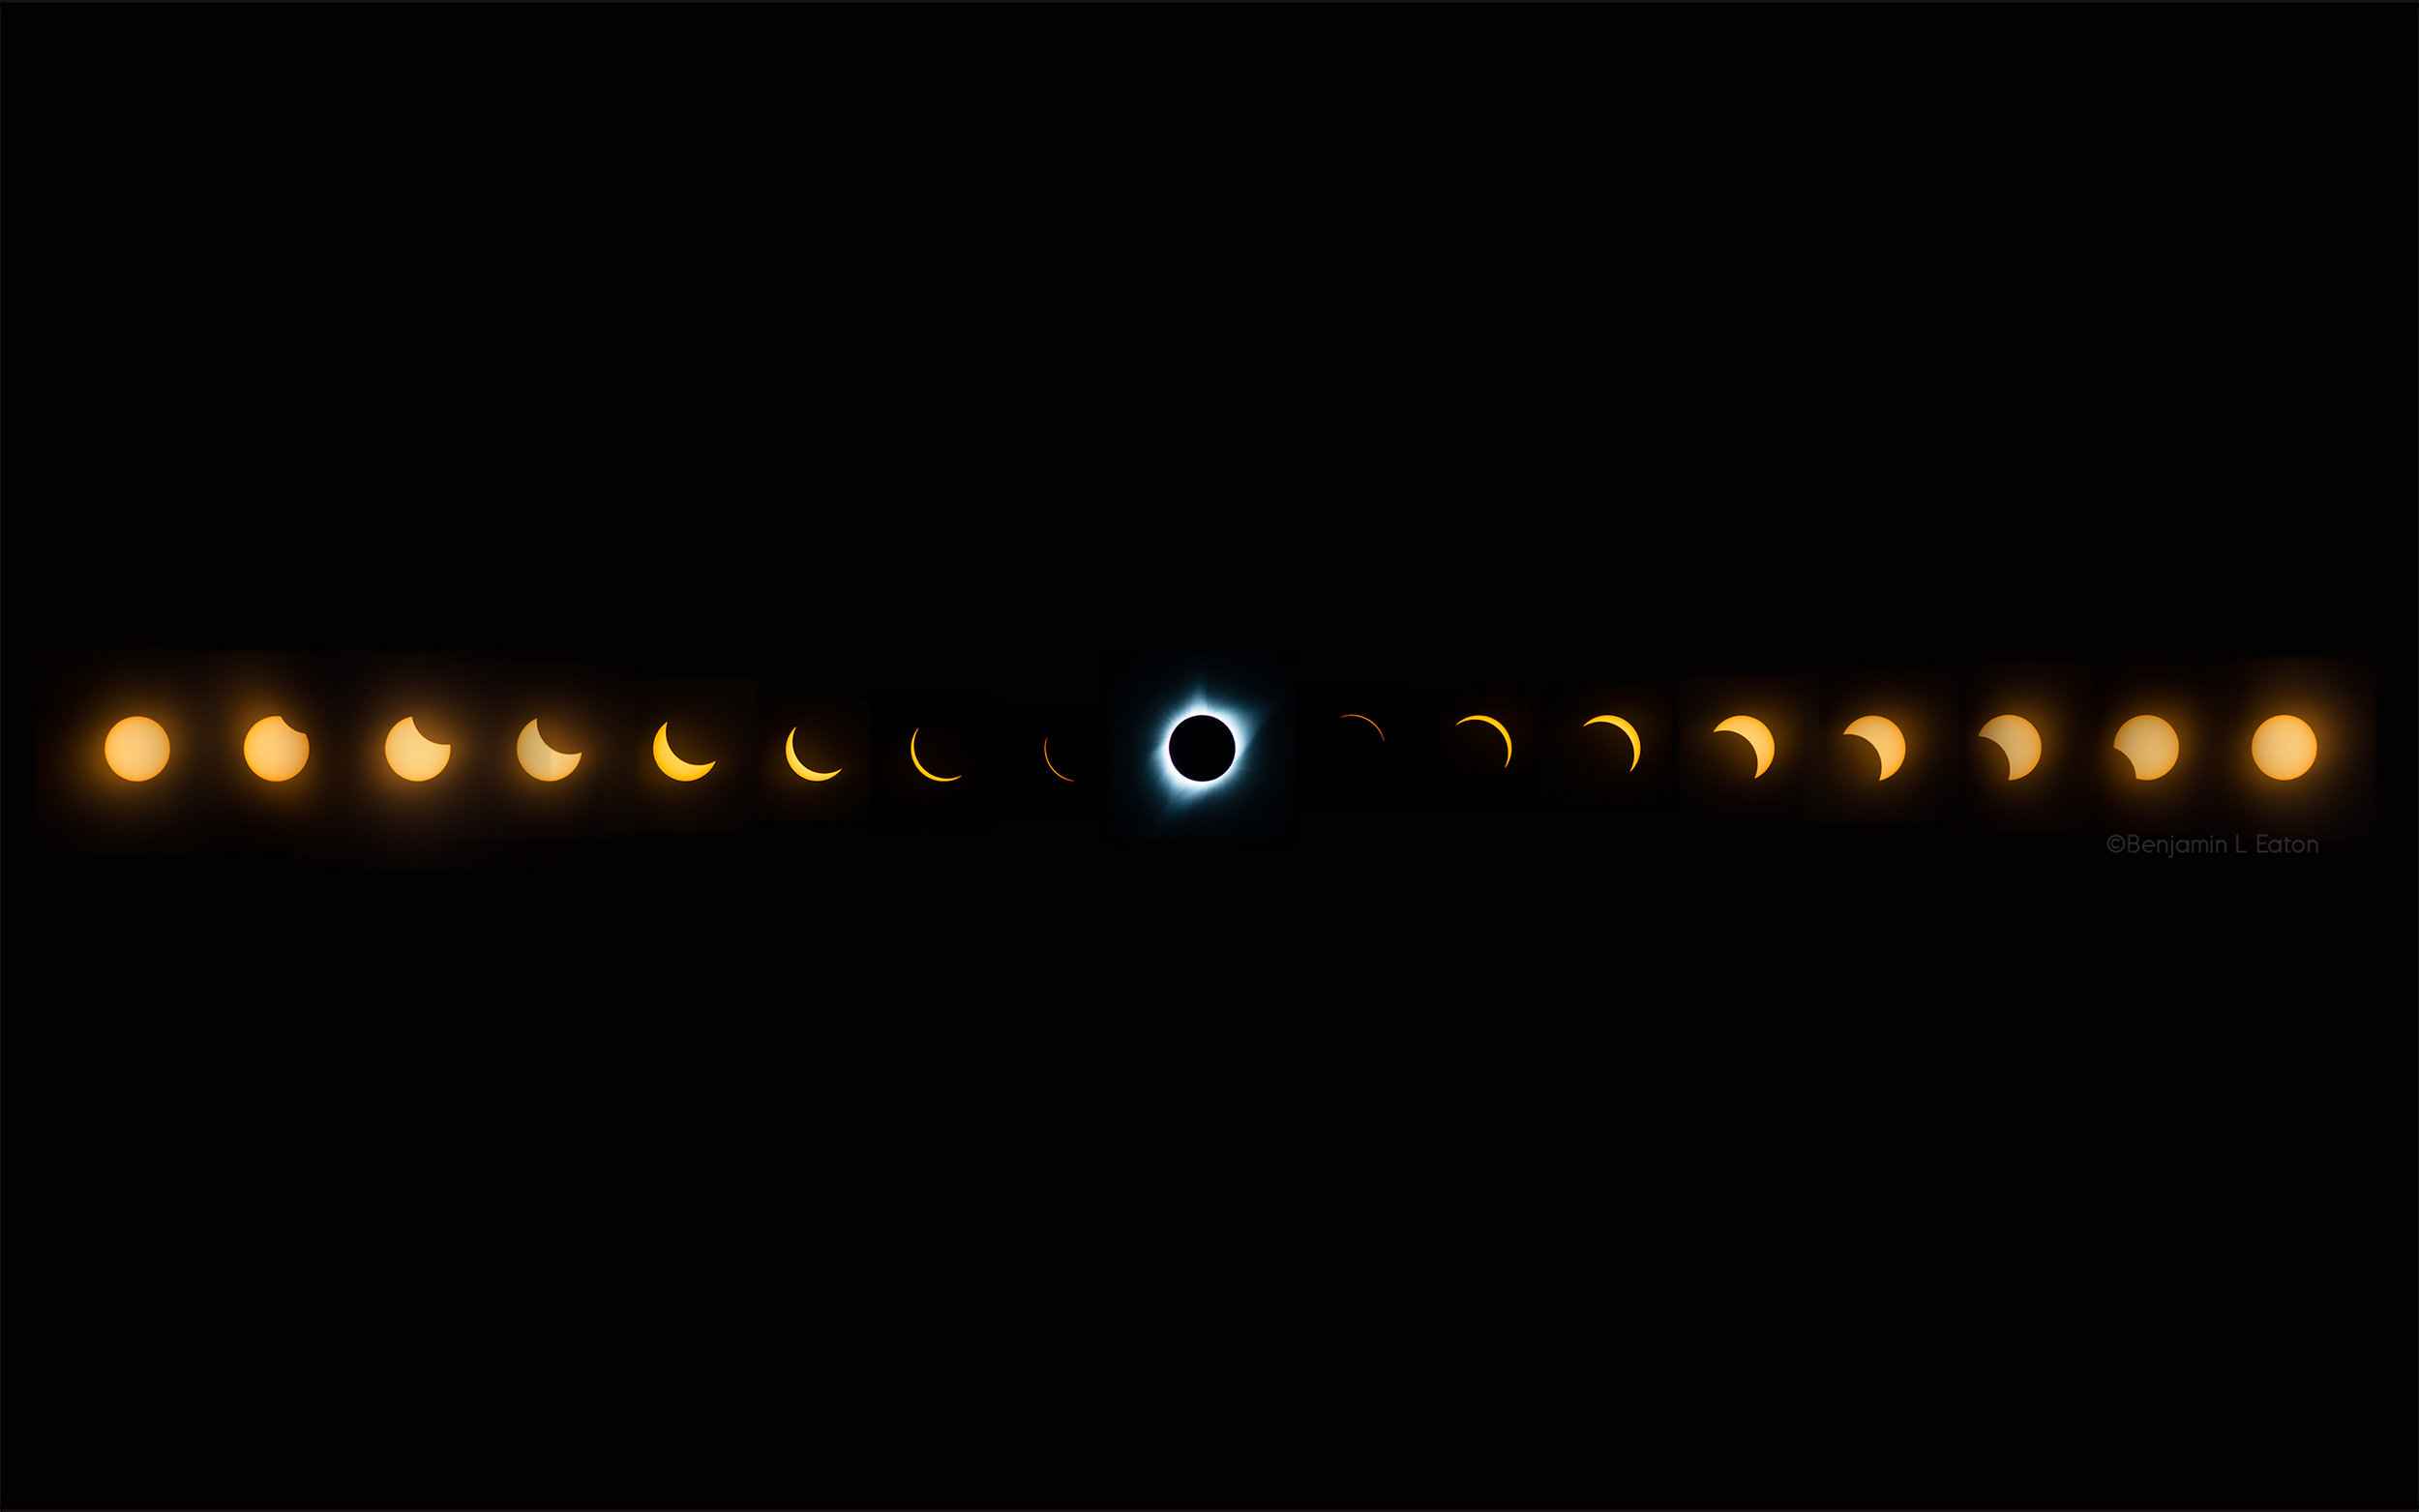 2017_eclipse_sequence_1800.jpg